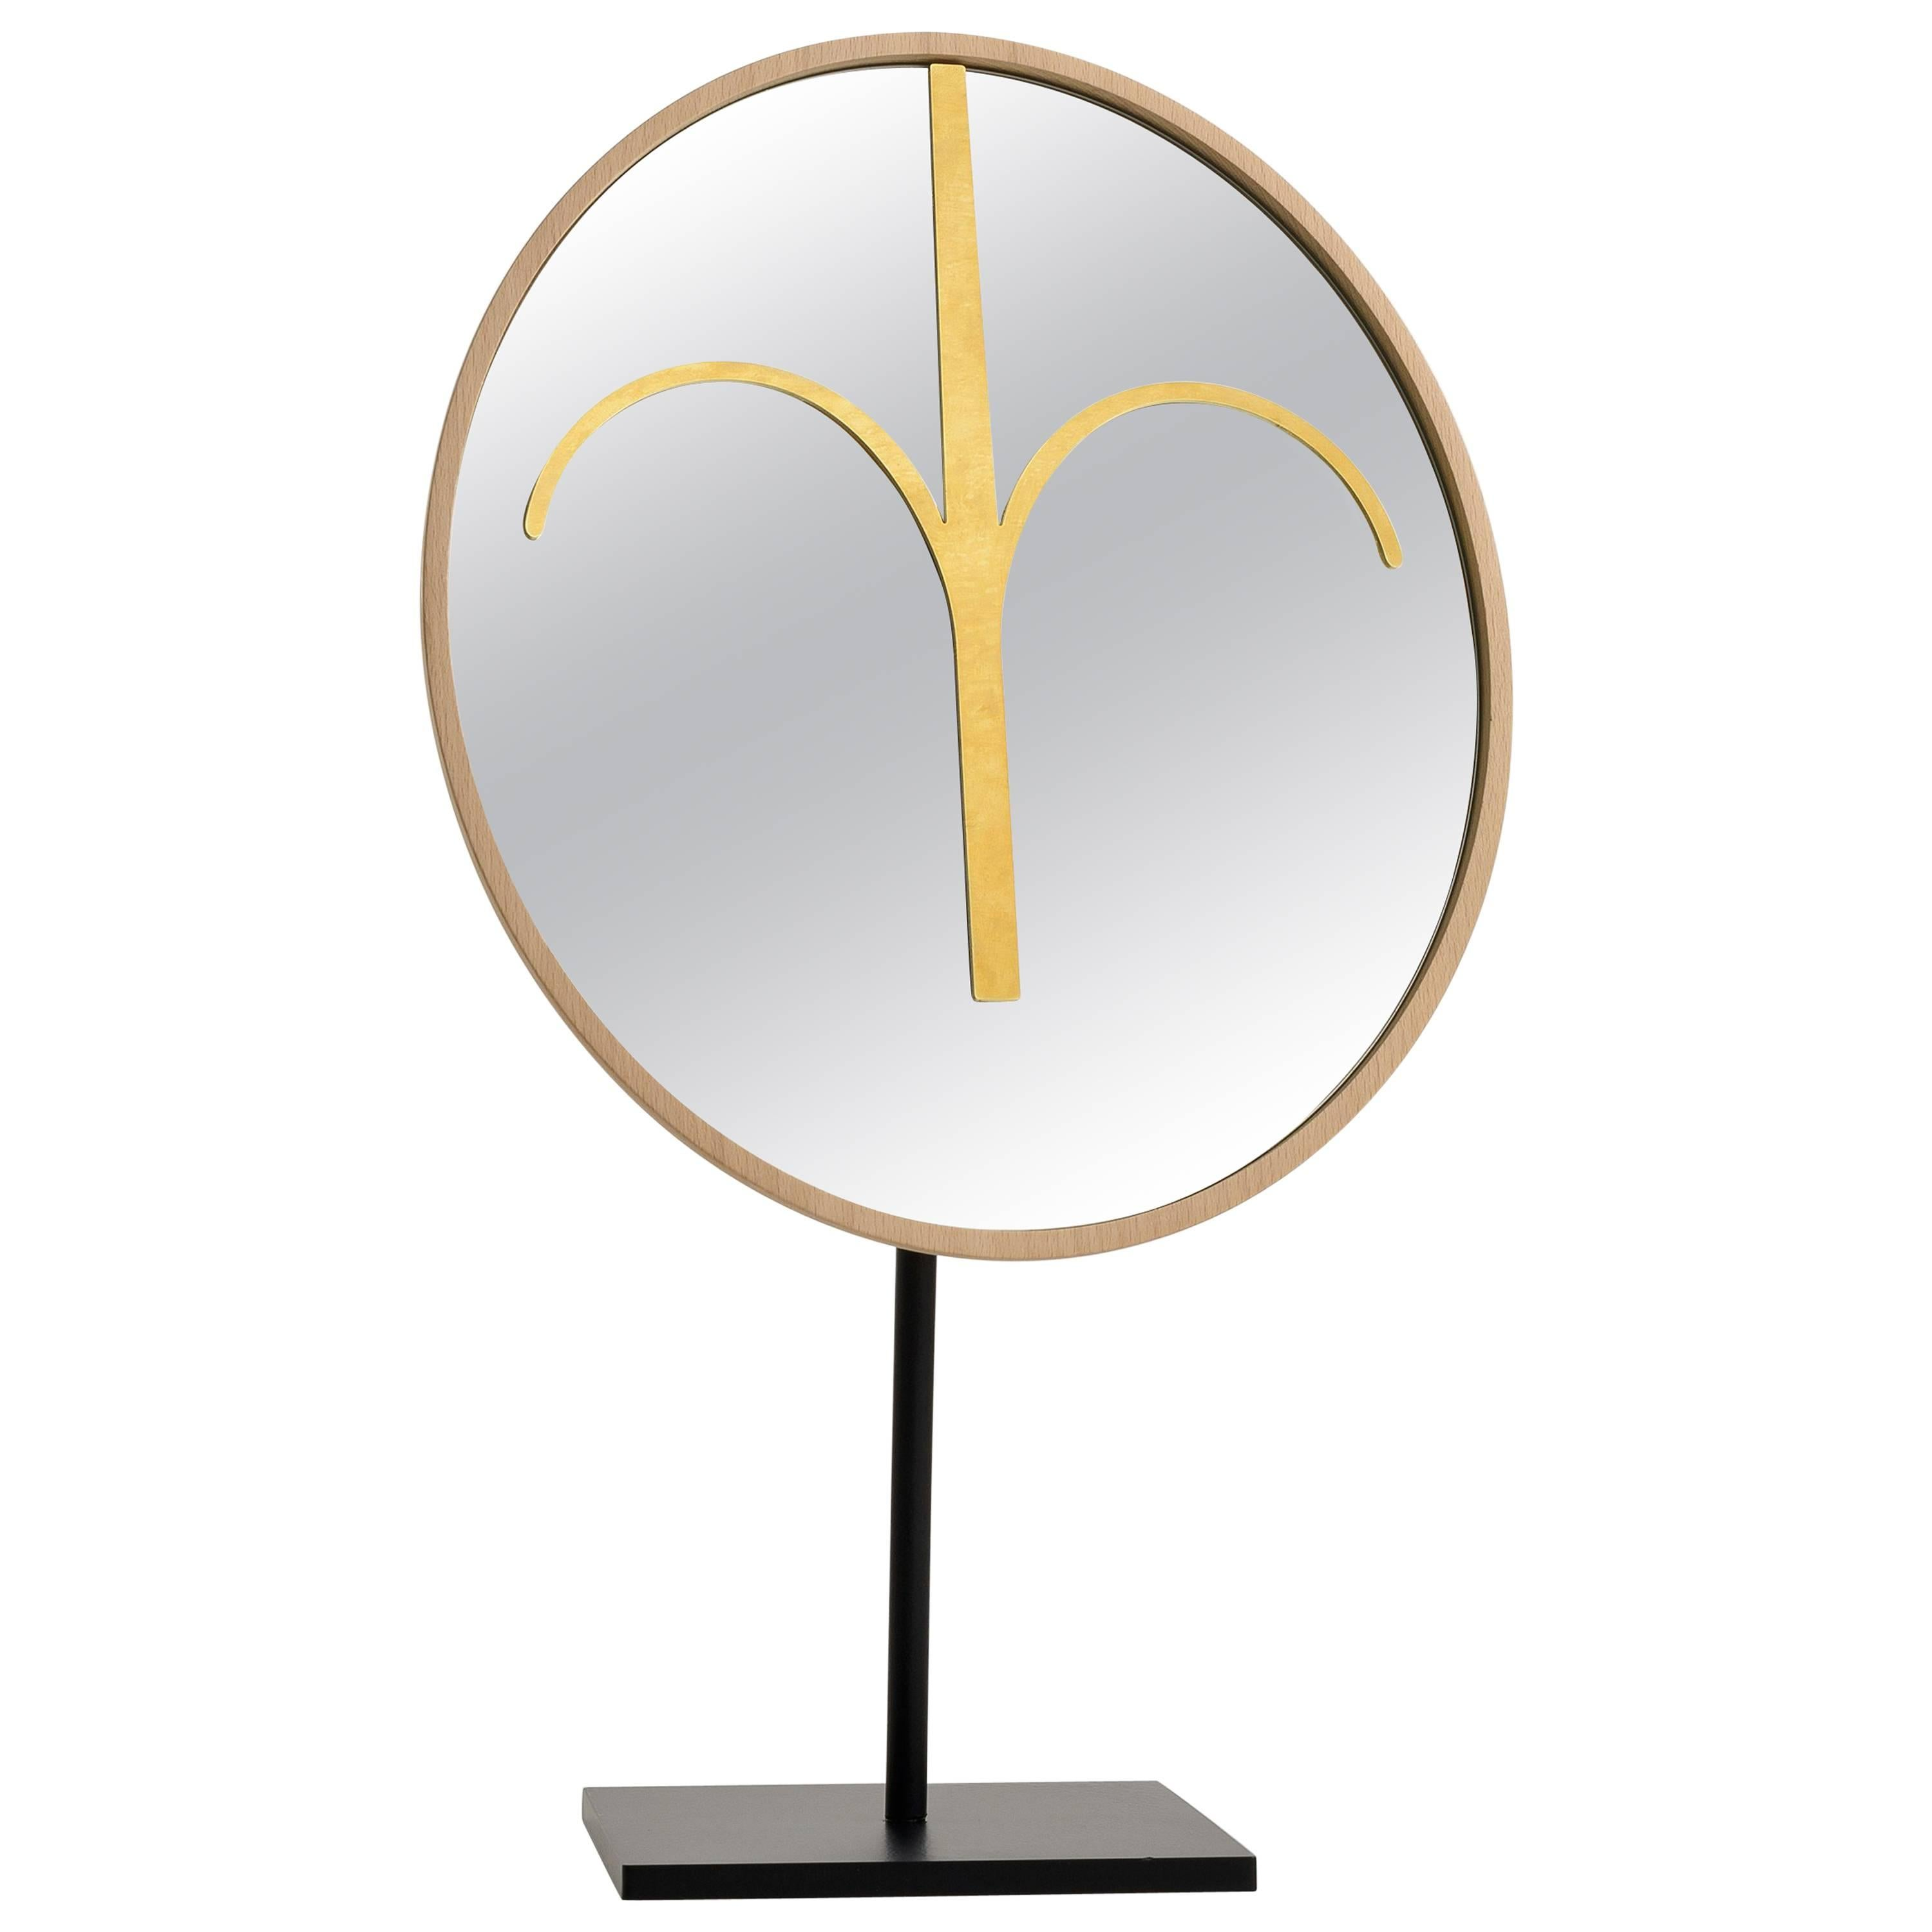 Wise Mirror Haua, Modern Tribal Mask and Mirror, Sculpture in solid beach wood